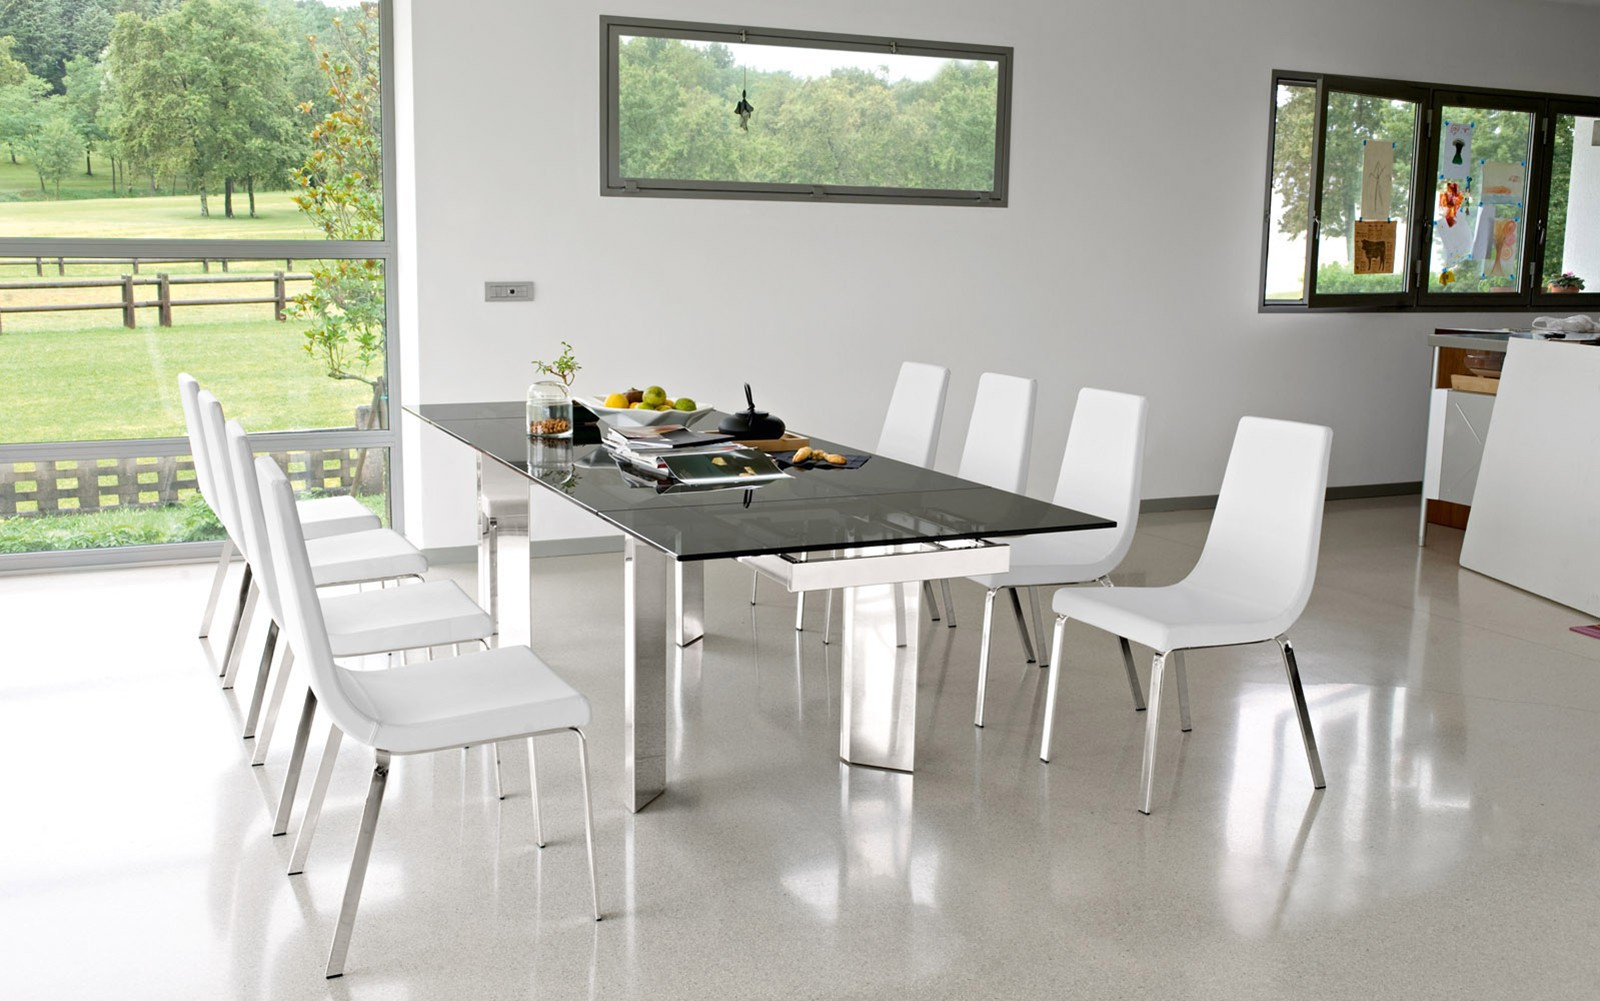 Holidayworthy Dining Furniture By Calligaris Hip Furniture